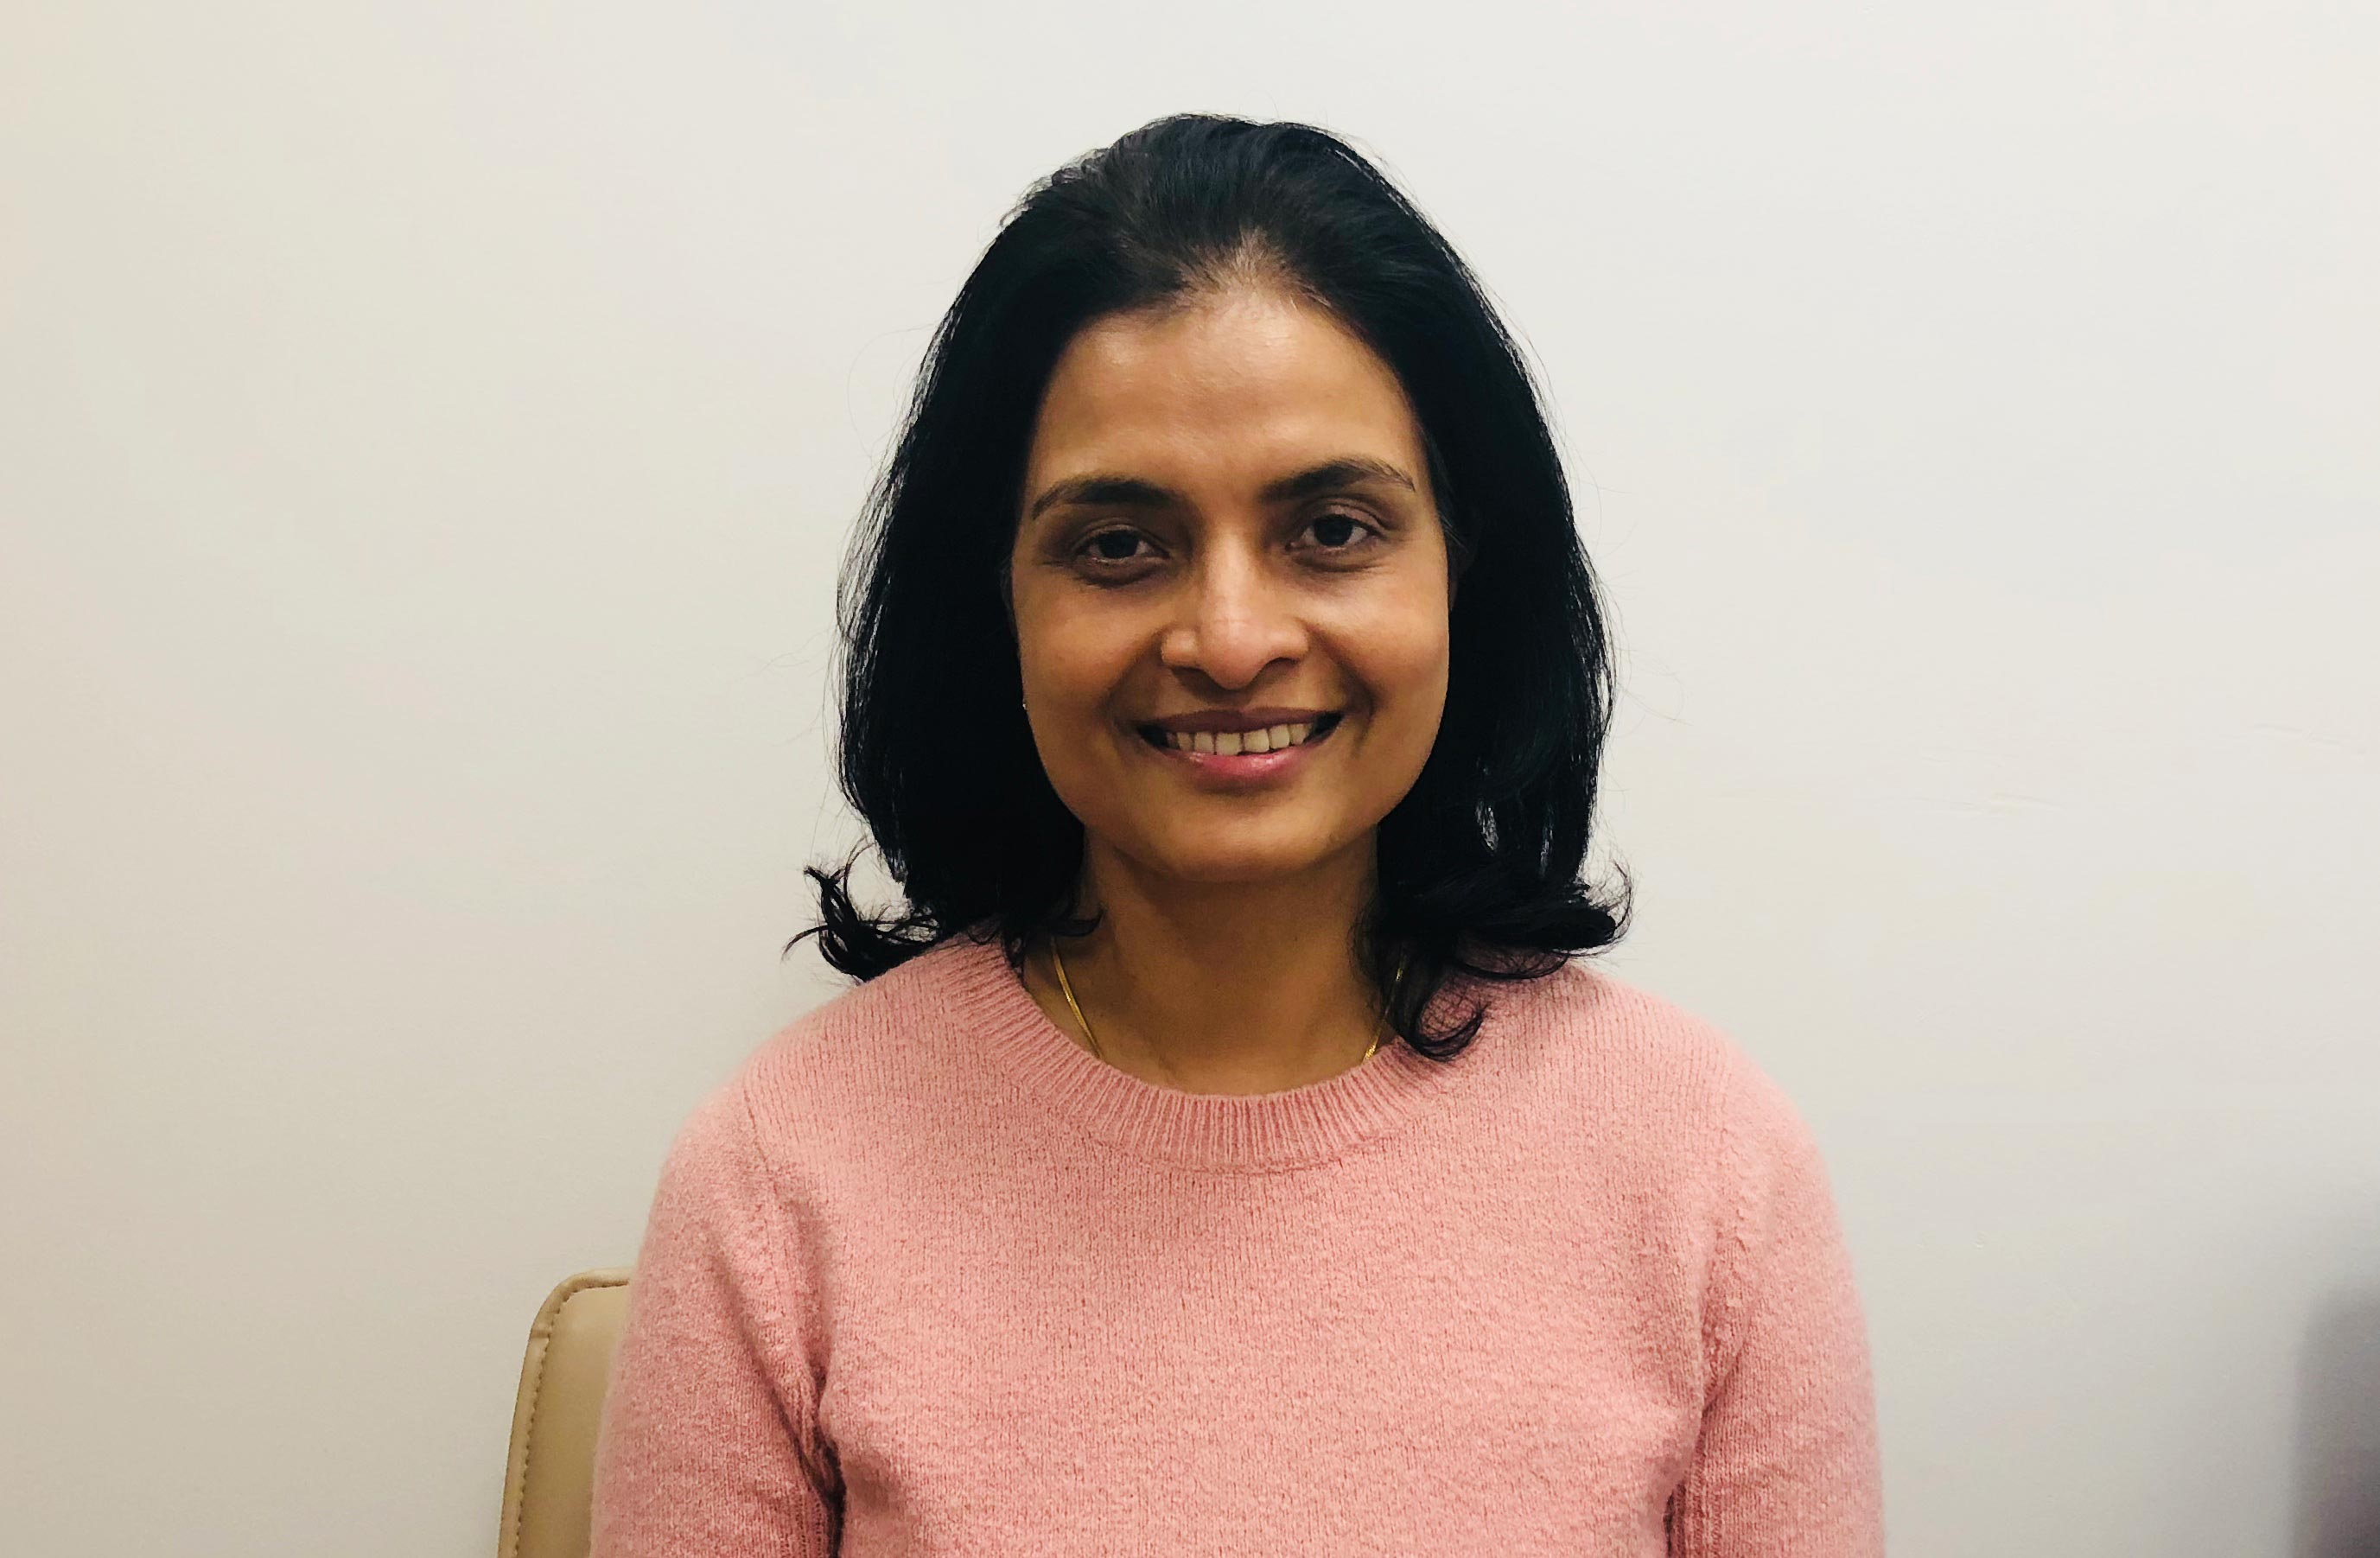 Dr Shilpa Deb answers abnormal cervical smear test results FAQs